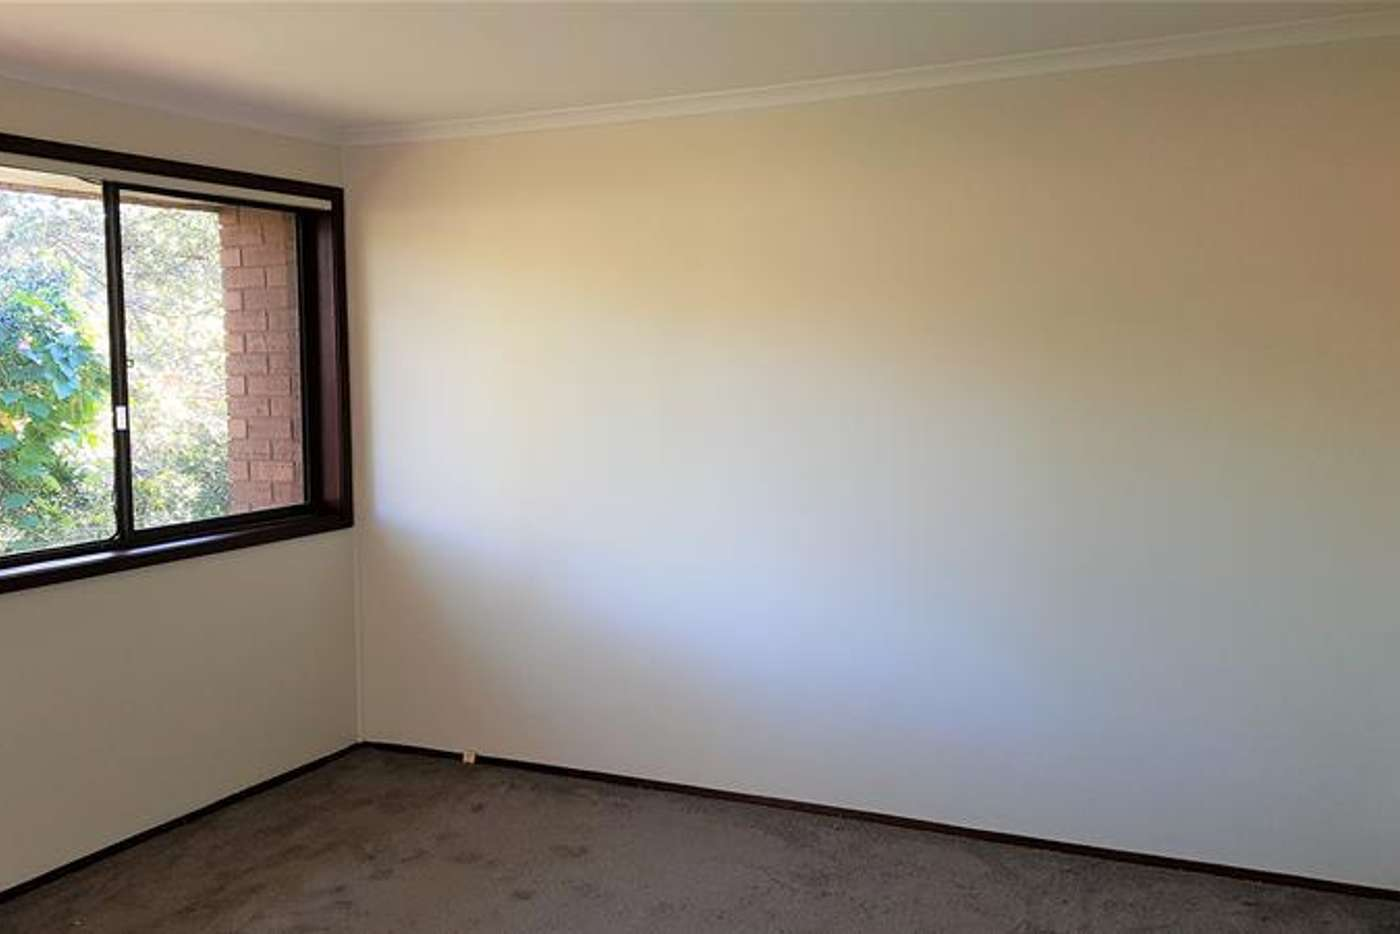 Seventh view of Homely townhouse listing, 13/6-8 Robert Street, Telopea NSW 2117